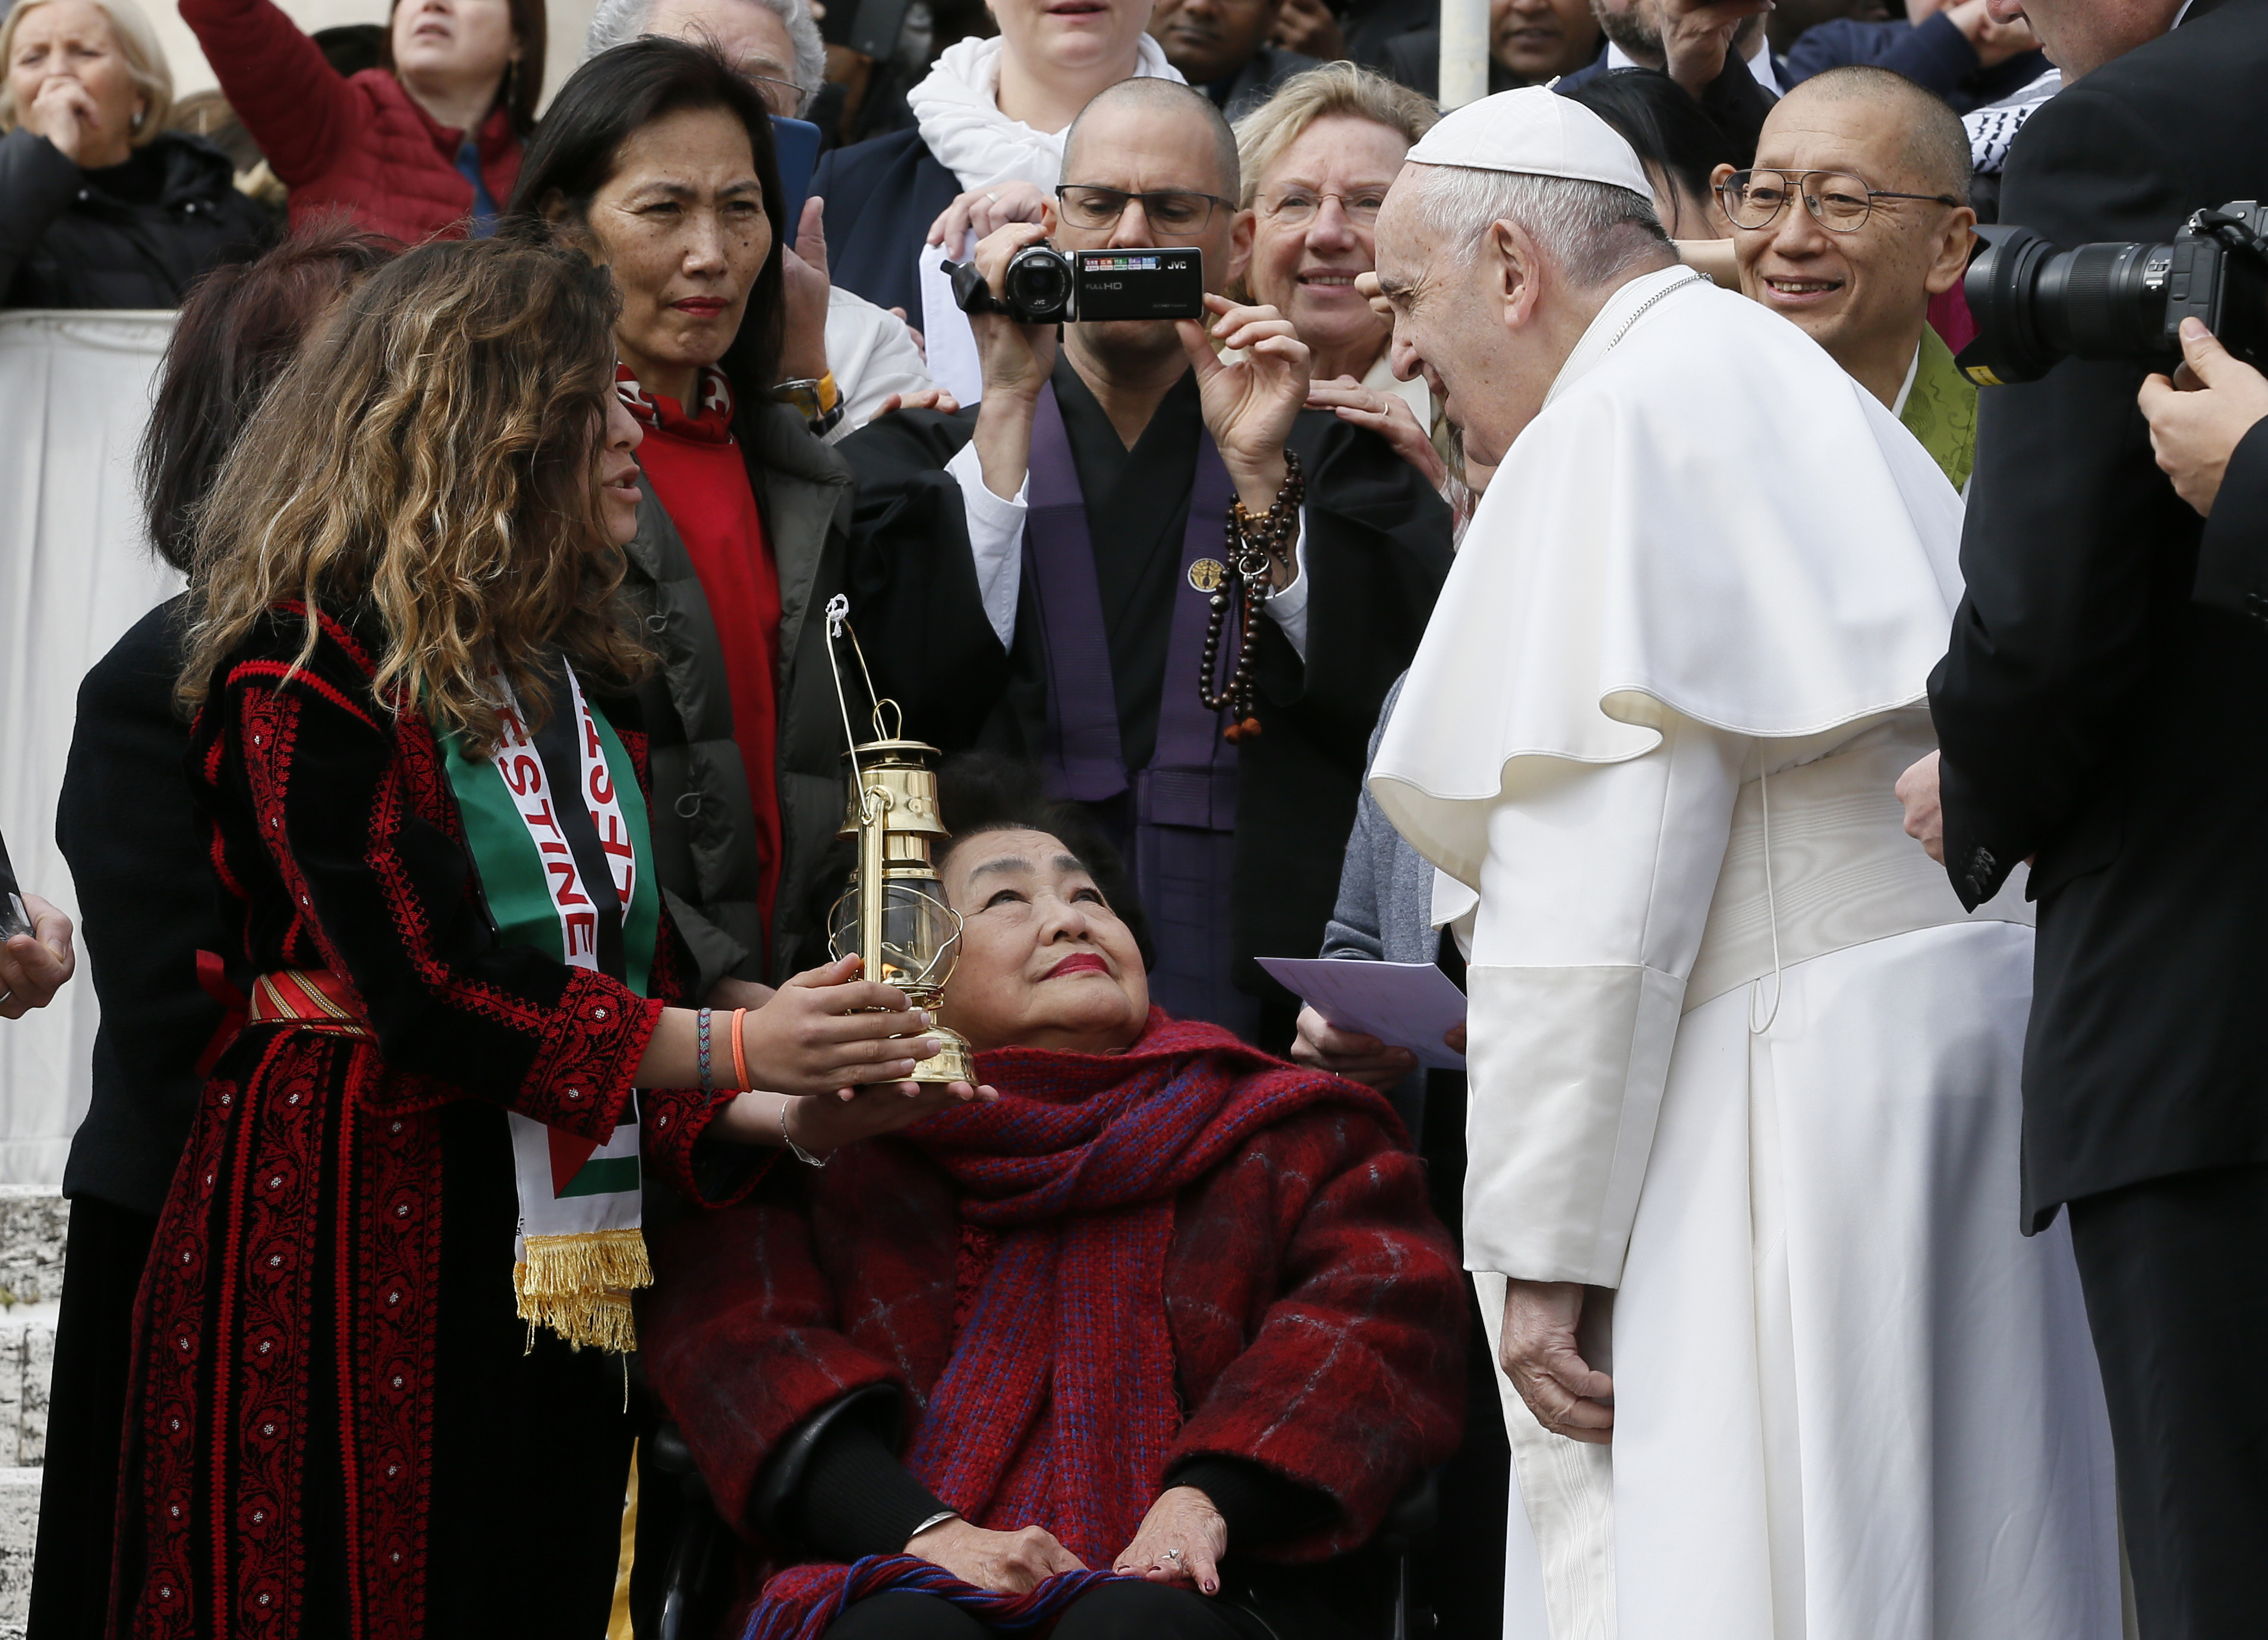 God's will is clear: to seek out, save humanity from evil, pope says